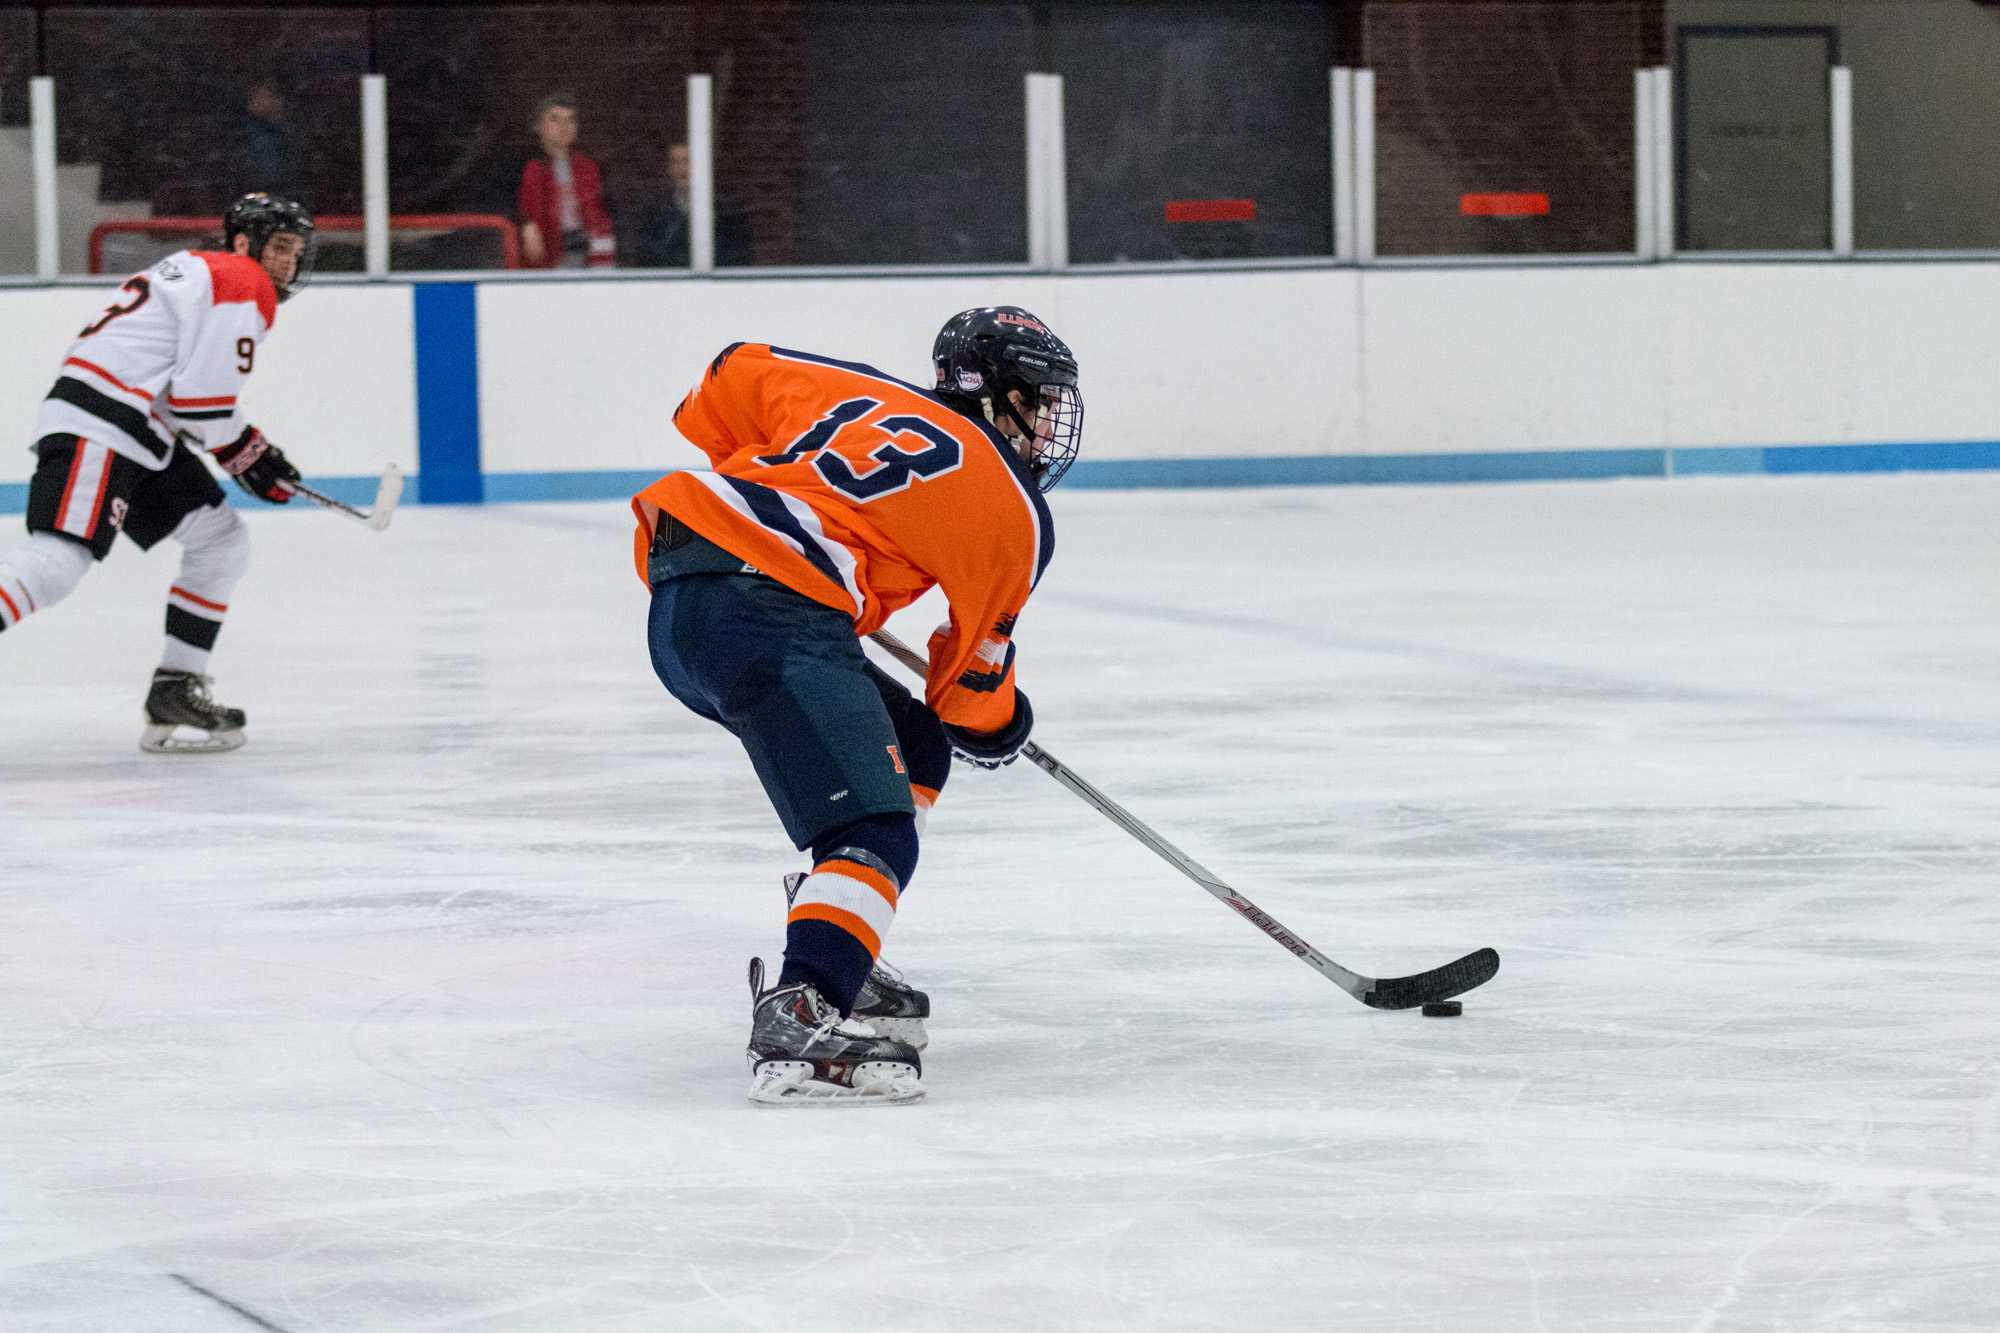 Eric+Cruickshank+and+James+Mcging+join+Illini+Drive+to+give+the+latest+on+Illini+Hockey.